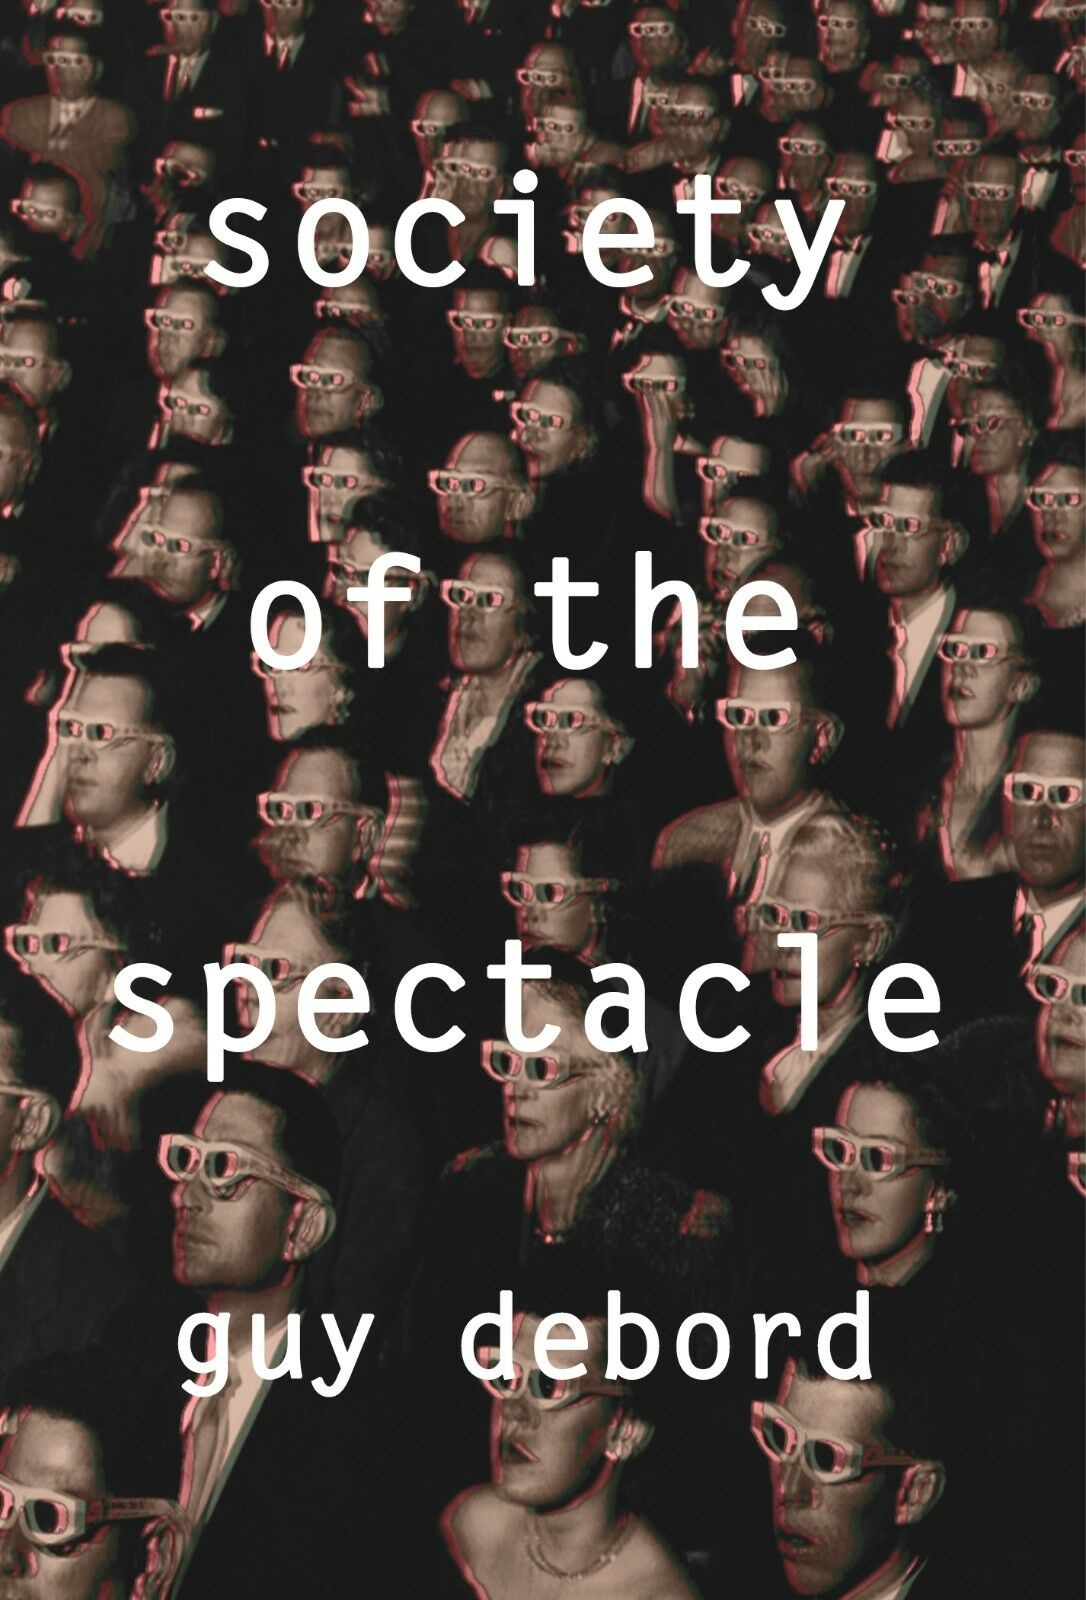 The Society of the Spectacle, Debord, Guy